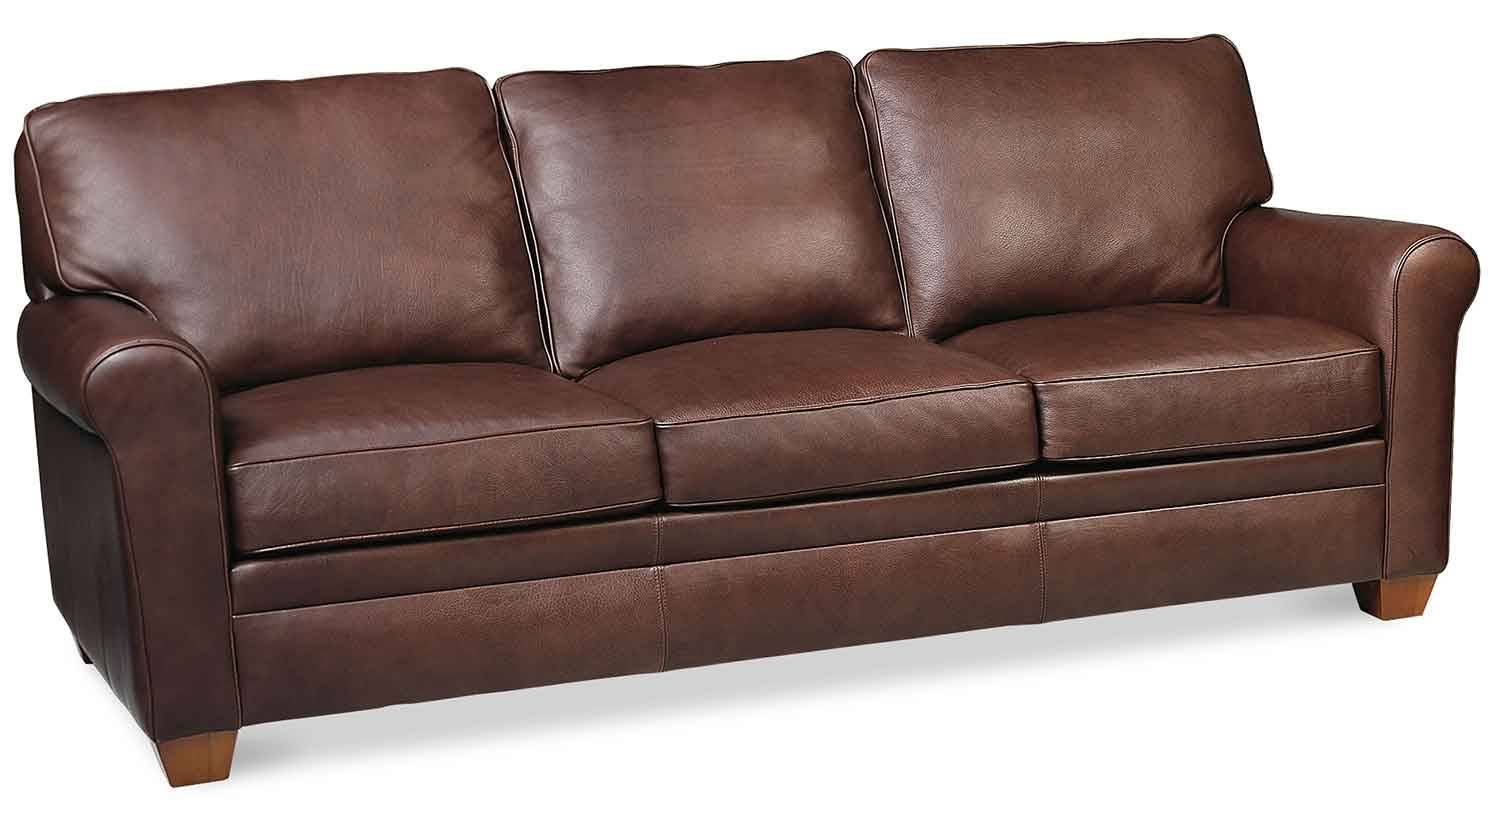 Circle Furniture - Braxton Sofa | Leather Sofas Danvers | Circle inside Braxton Sofa (Image 28 of 30)